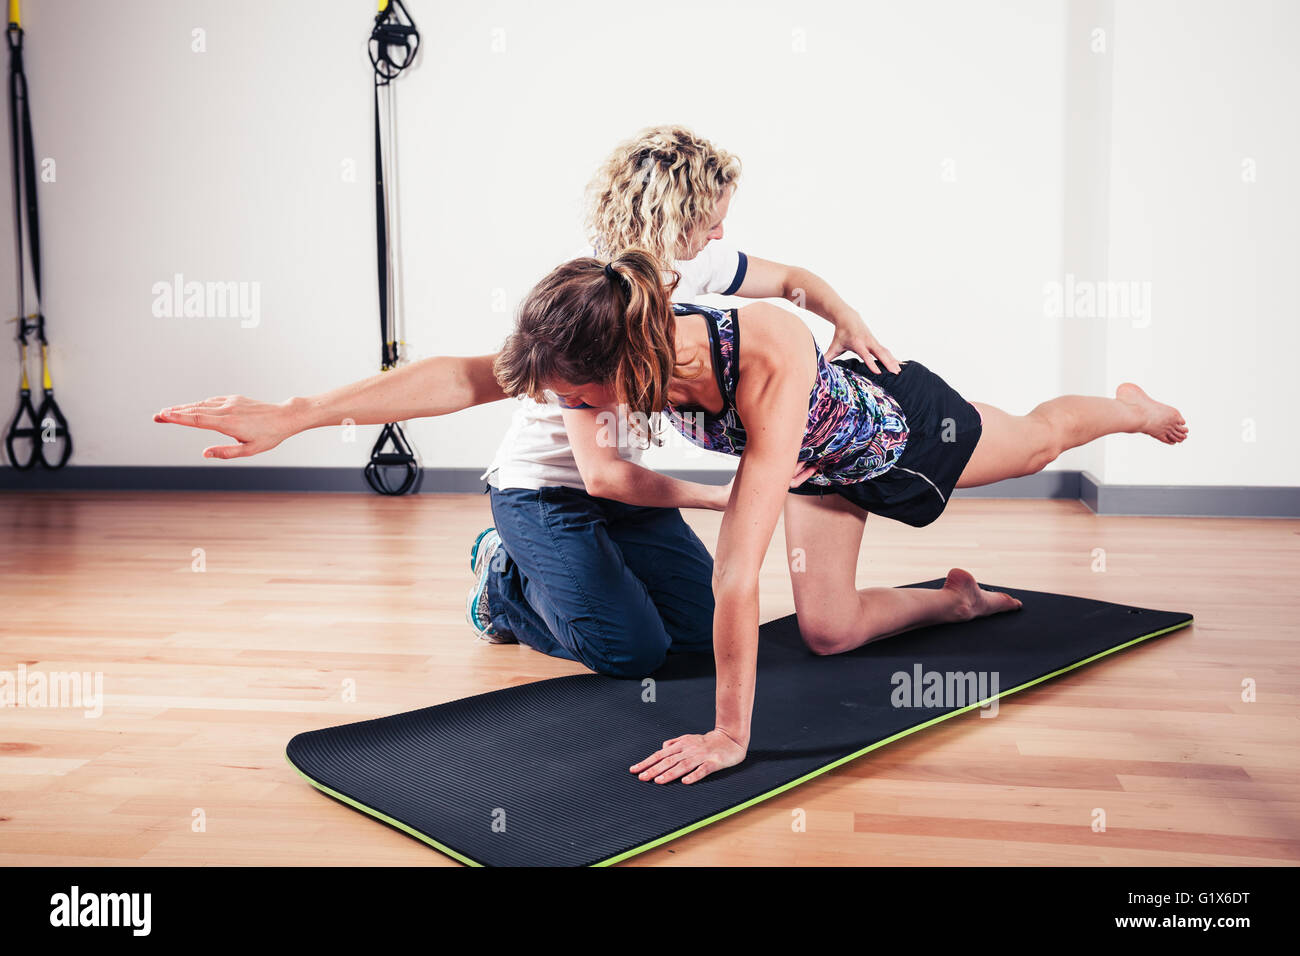 A therapist is correcting the technique of a woman exercising and stretching in a gym - Stock Image